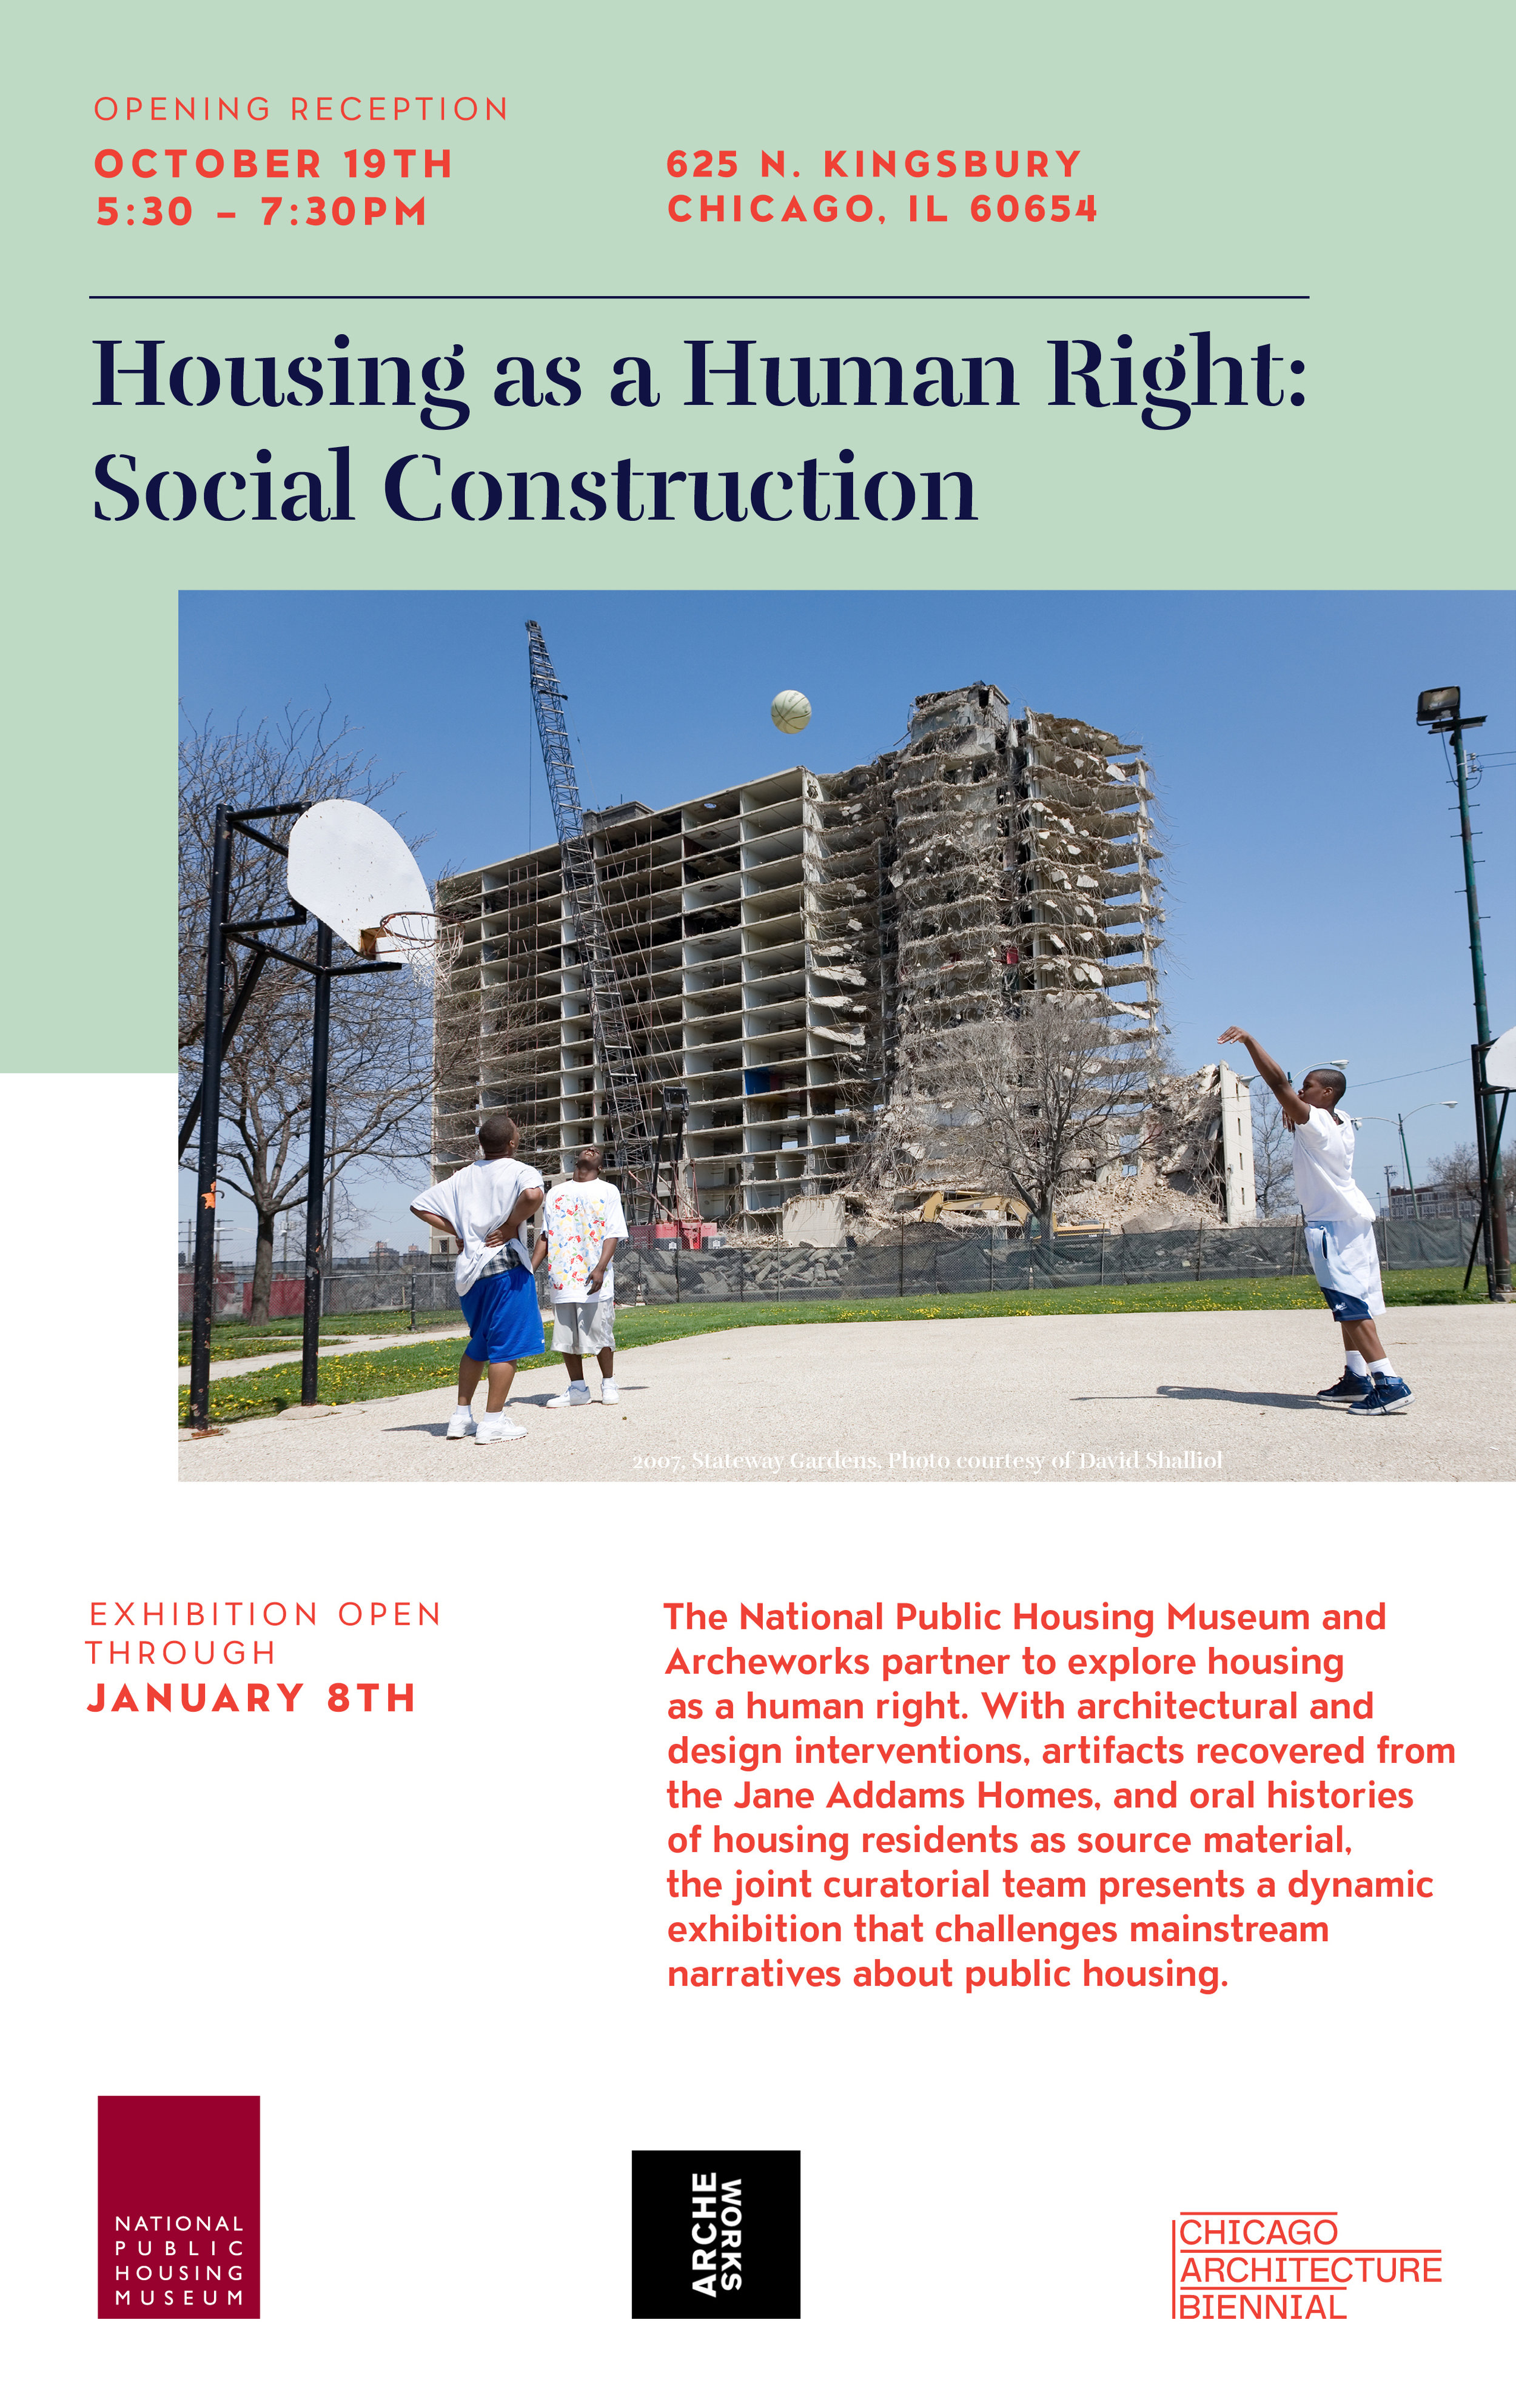 Opening+Reception+Housing+as+a+Human+Right+-+Social+Construction+Image.jpg